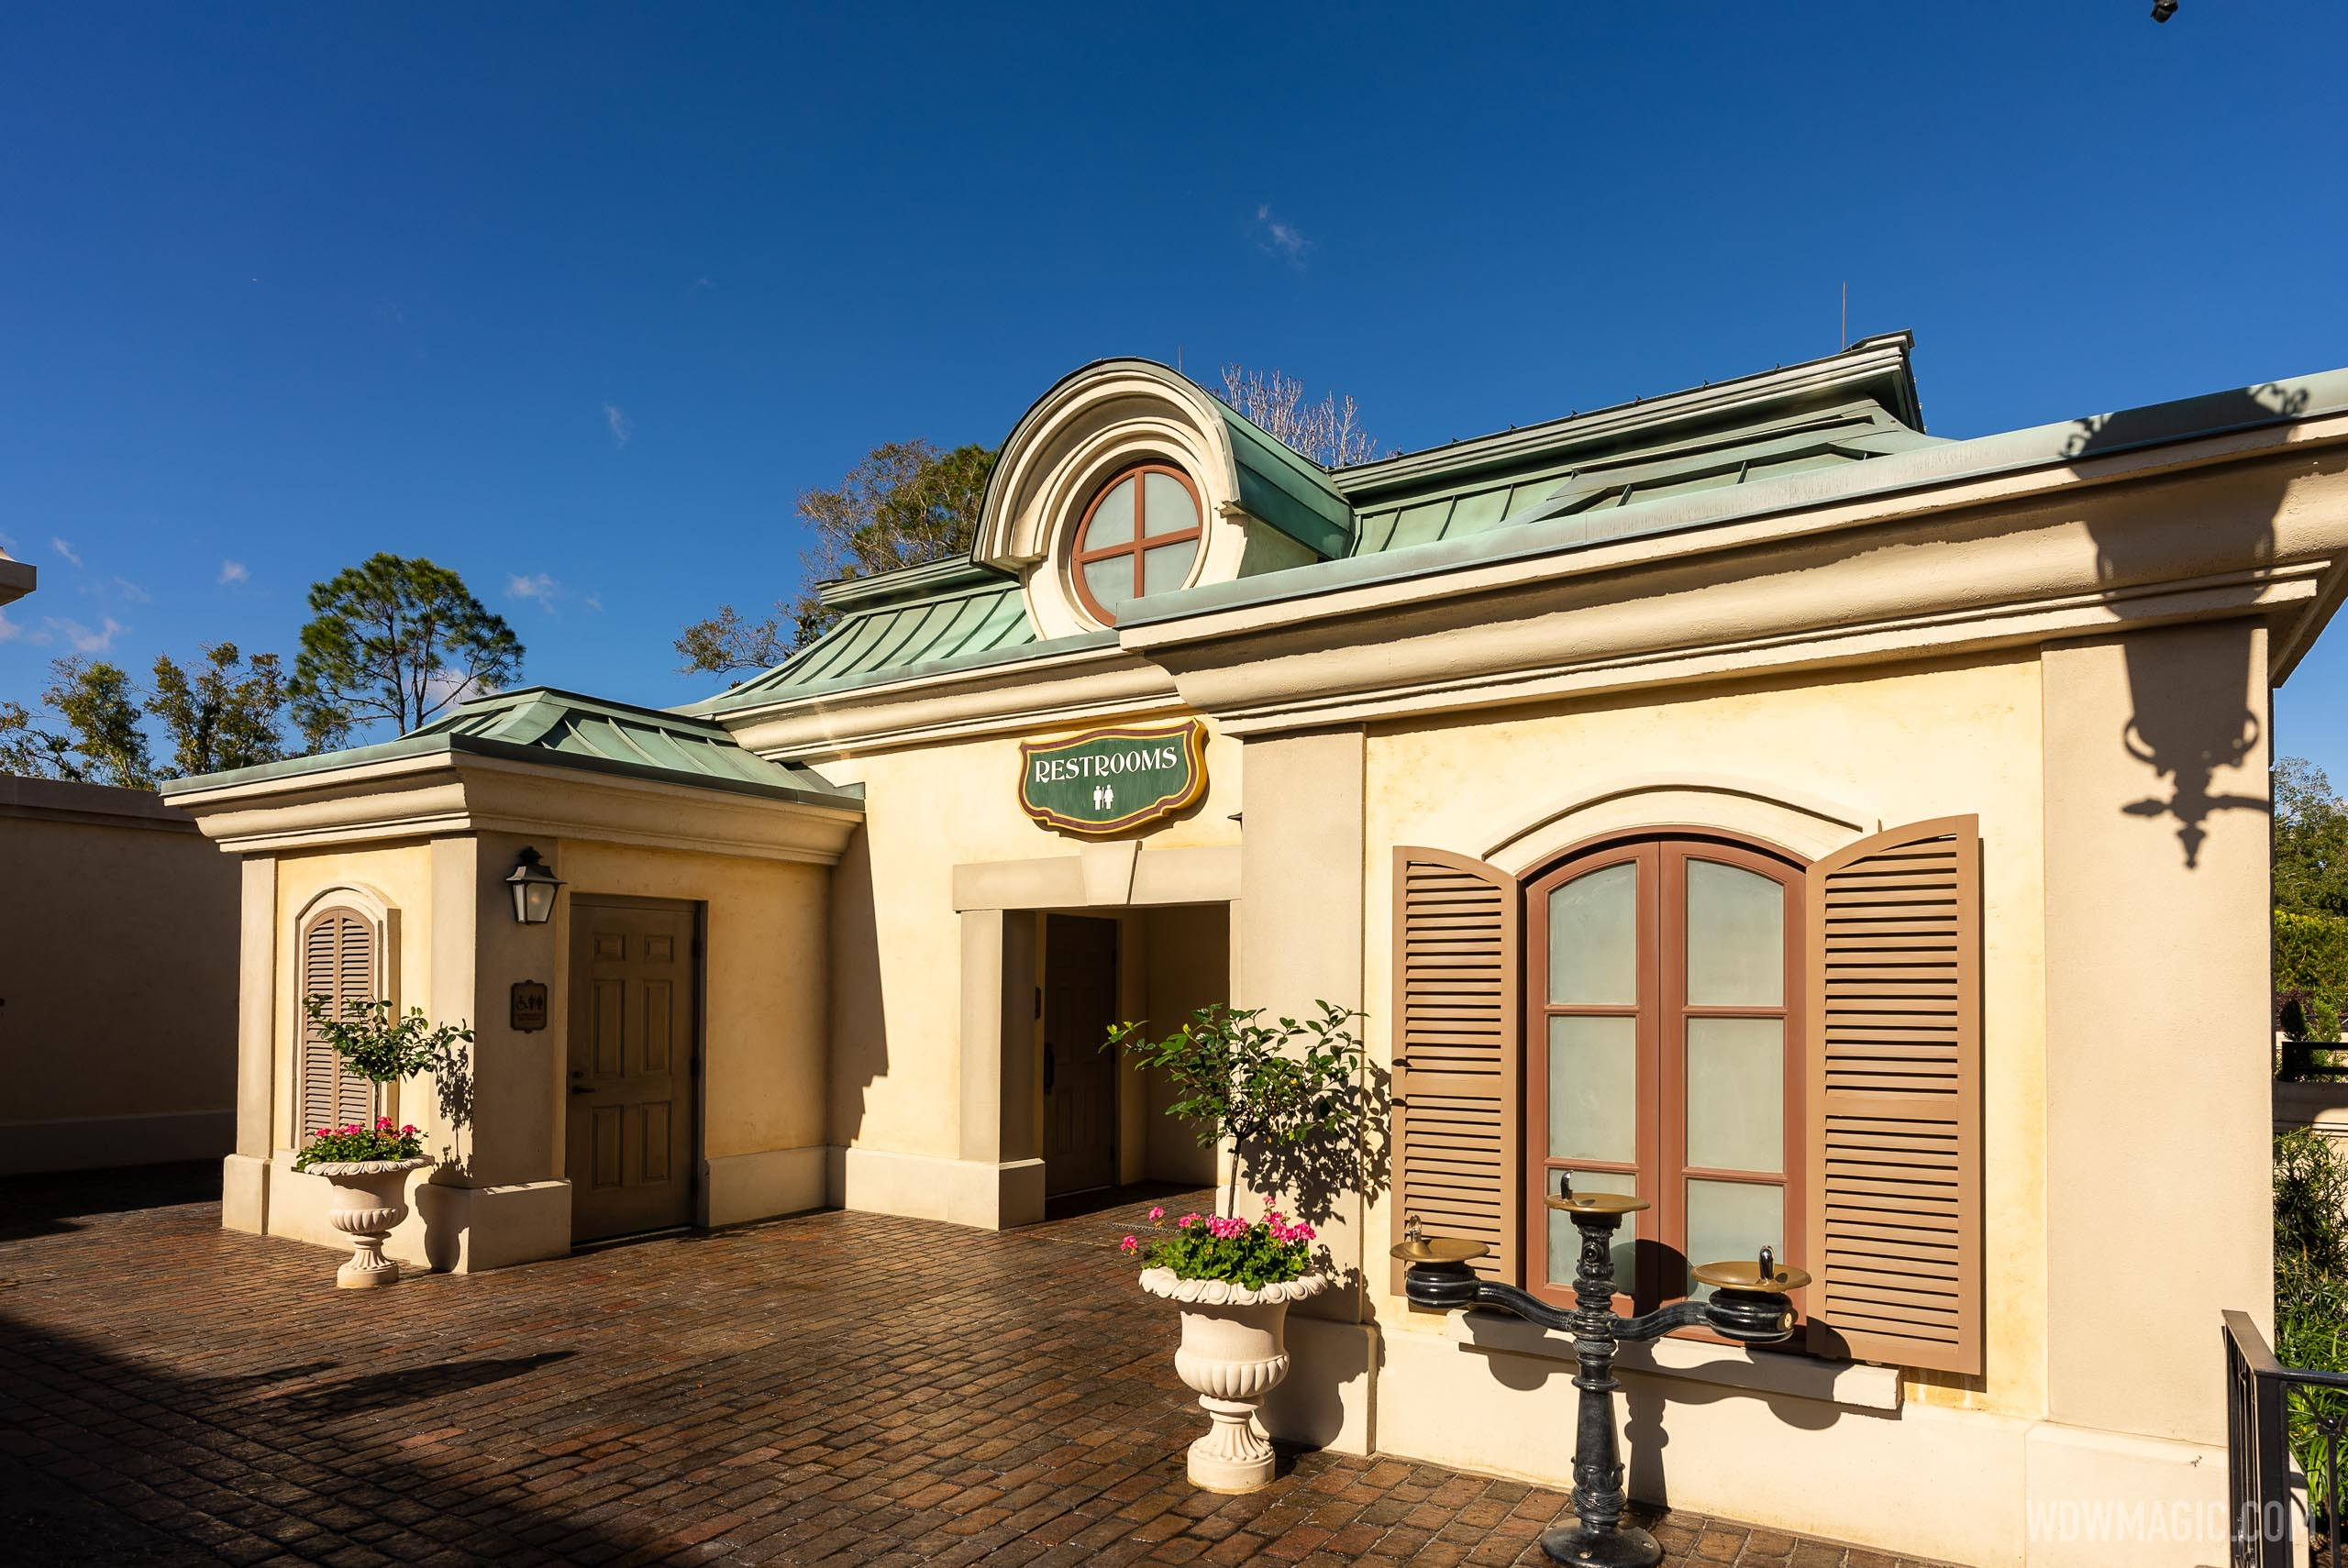 First phase of the France pavilion expansion opens to guests